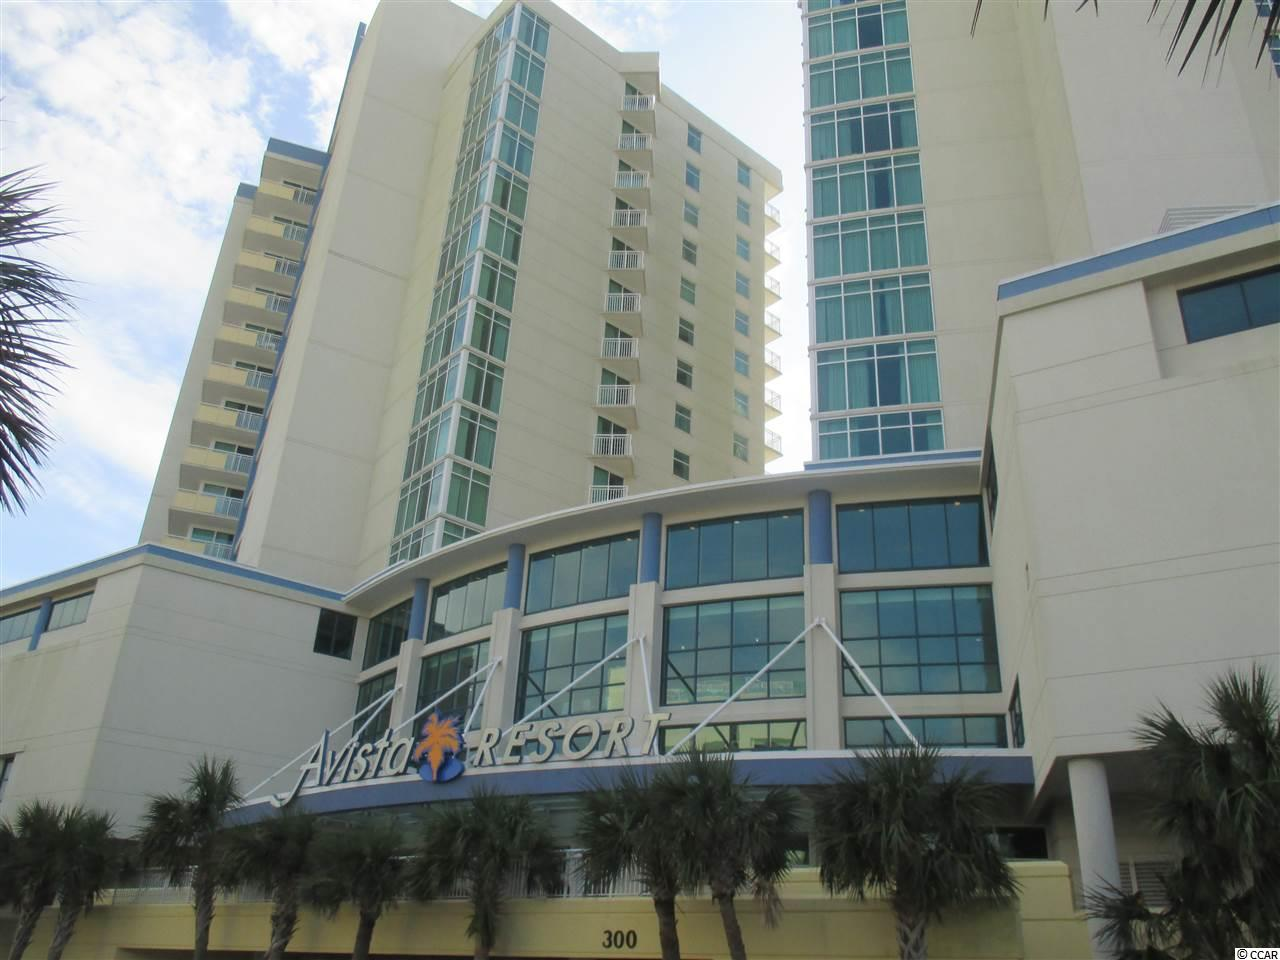 """This one bedroom condo at the beautiful Avista Ocean Resort is a DIRECT OCEANFRONT condo with a private entry hall just off the heated and cooled enclosed hallways that keep you dry and comfortable when going to your room after your trip to Ocean Drive Beach. Unit 527 is fully furnished and features a full size kitchen with granite counter tops, stove, refrigerator, microwave and dishwasher. The living area features a Murphy bed, pull out couch, dining area, washer/dryer, granite counter top on the TV cabinet and a fantastic view of the Atlantic Ocean. The bathroom features a whirlpool tub with tile surround. The private bedroom in this condo is separate from the door entry and located just off the foyer. This unit can sleep 6 which makes it the ideal getaway for the entire family. Avista Ocean Resort features Indoor and Outdoor Pools, Spa, Lazy River, Onsite Restaurant, Tiki Bar and Large Fitness Center. Now here is the good news.This condo is on the on-site rental program, when you are not using it for yourself, and it has excellent rental income. It is definitely a """"Must See"""" if you are in the market for one of the best DIRECT OCEANFRONT Condos on the Grand Strand."""